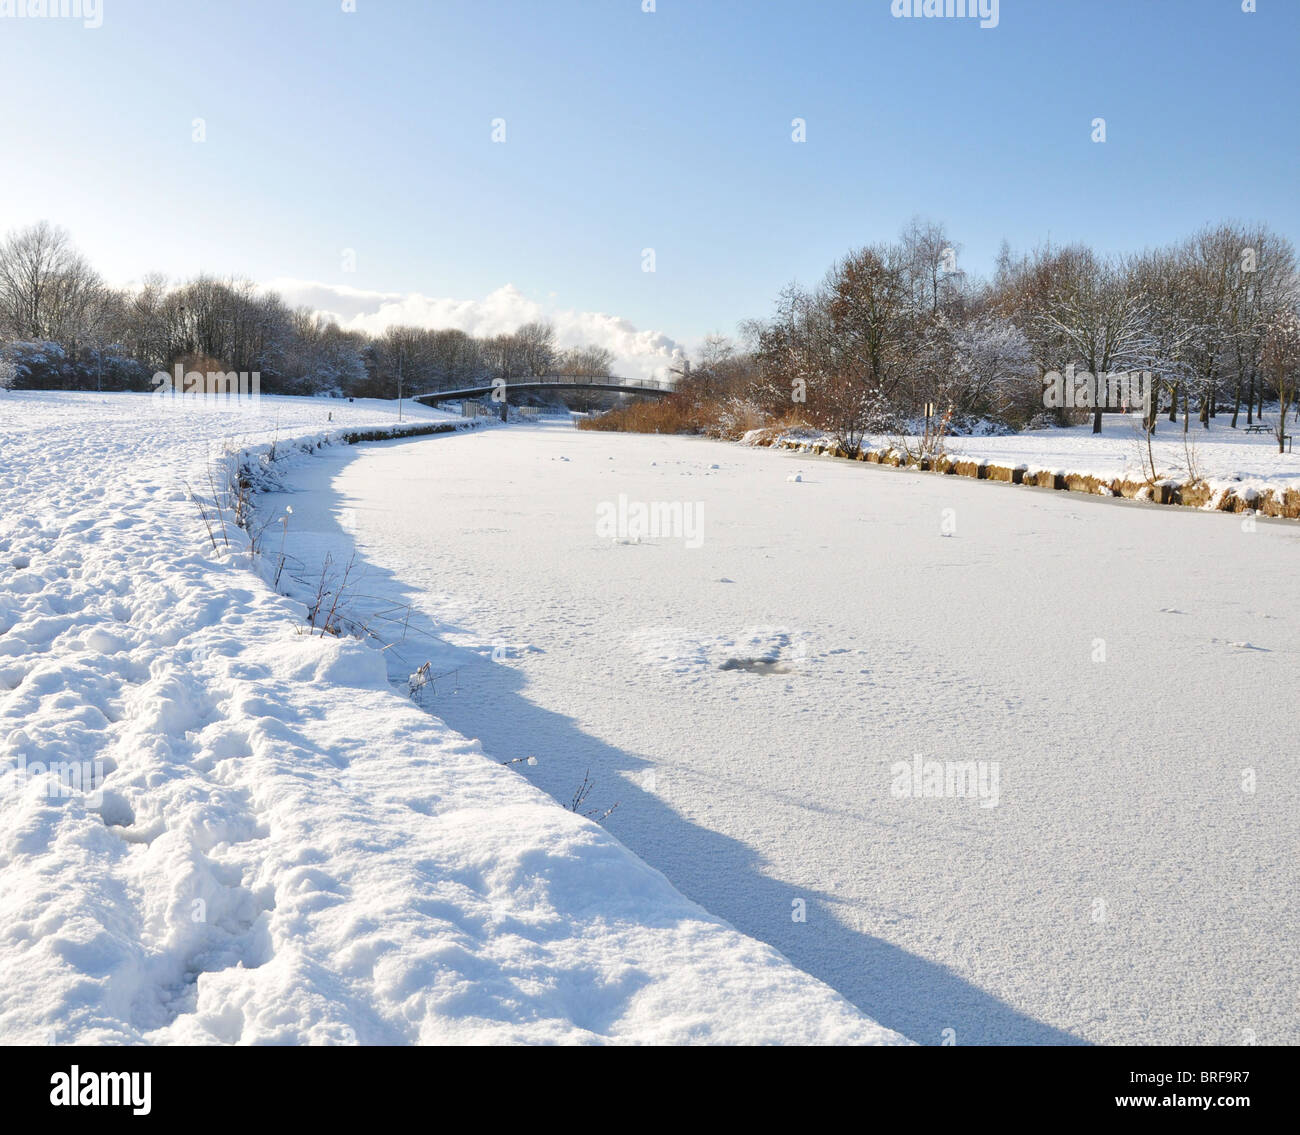 Frozen canal in the snow - Stock Image